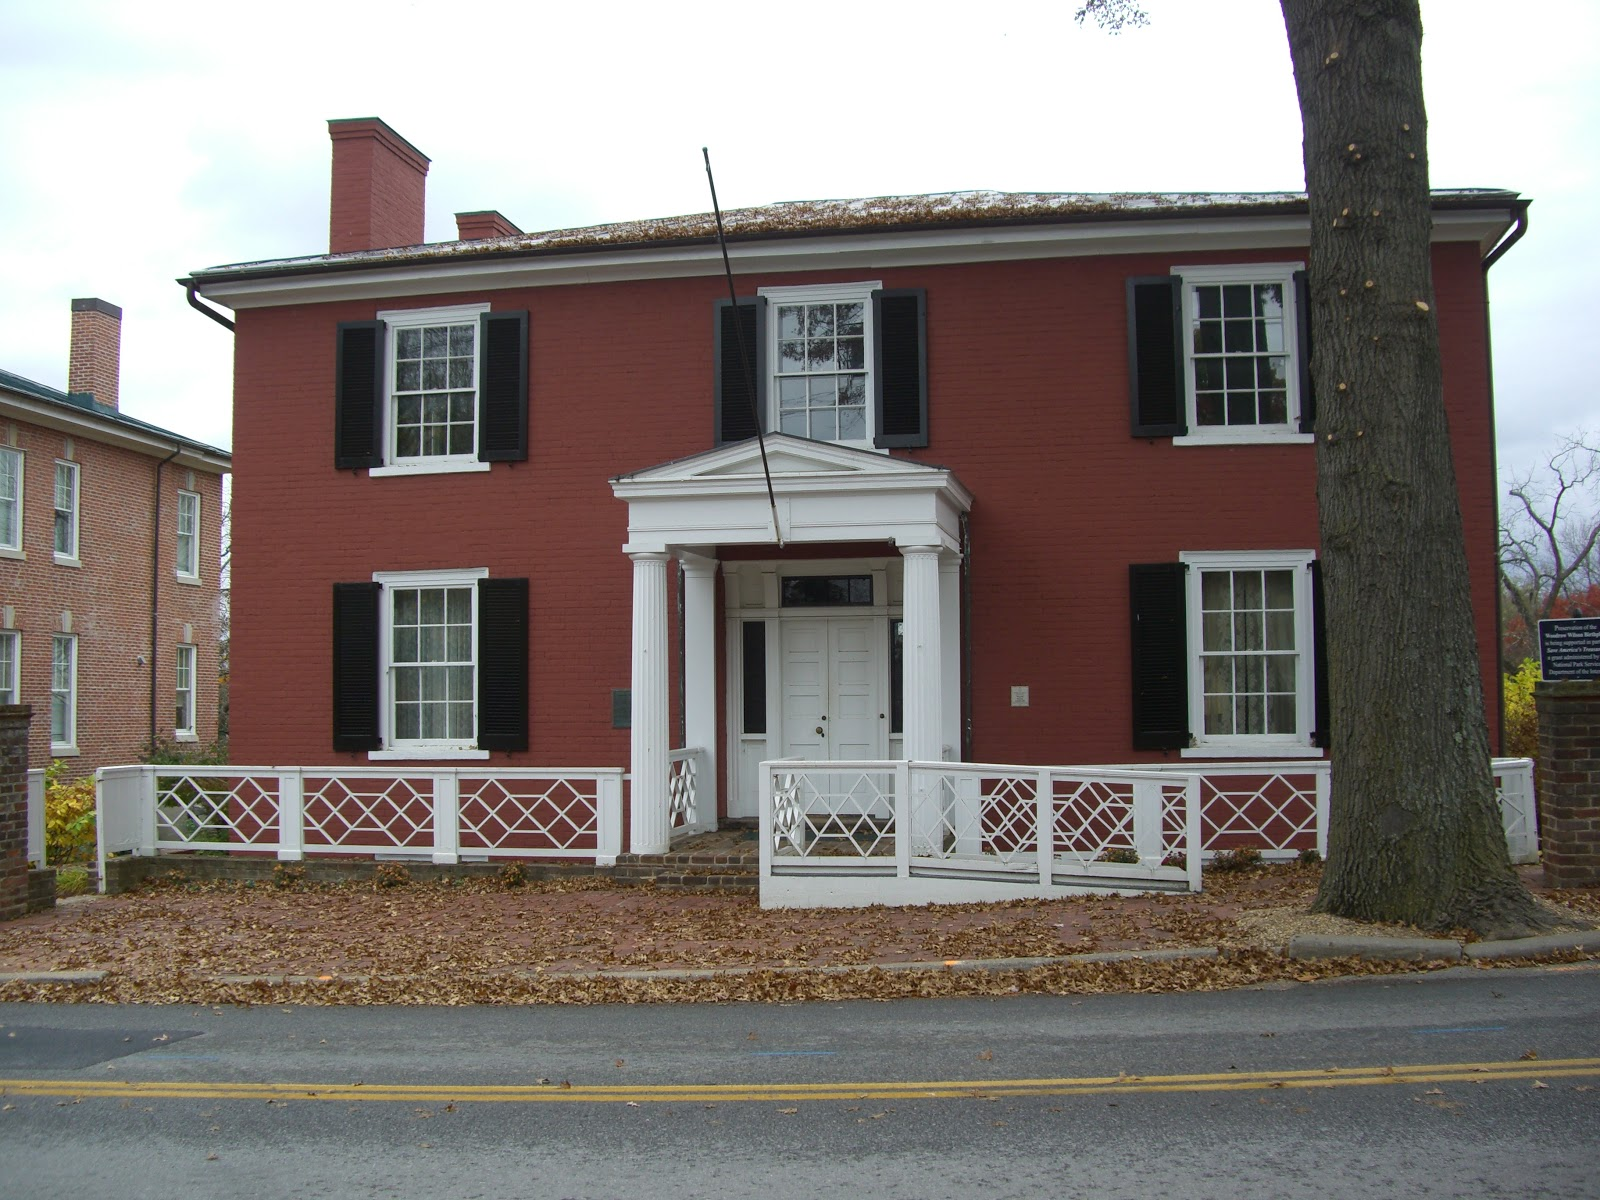 Author Lynda Beck Fenwick Halloween in the Southern Colonies